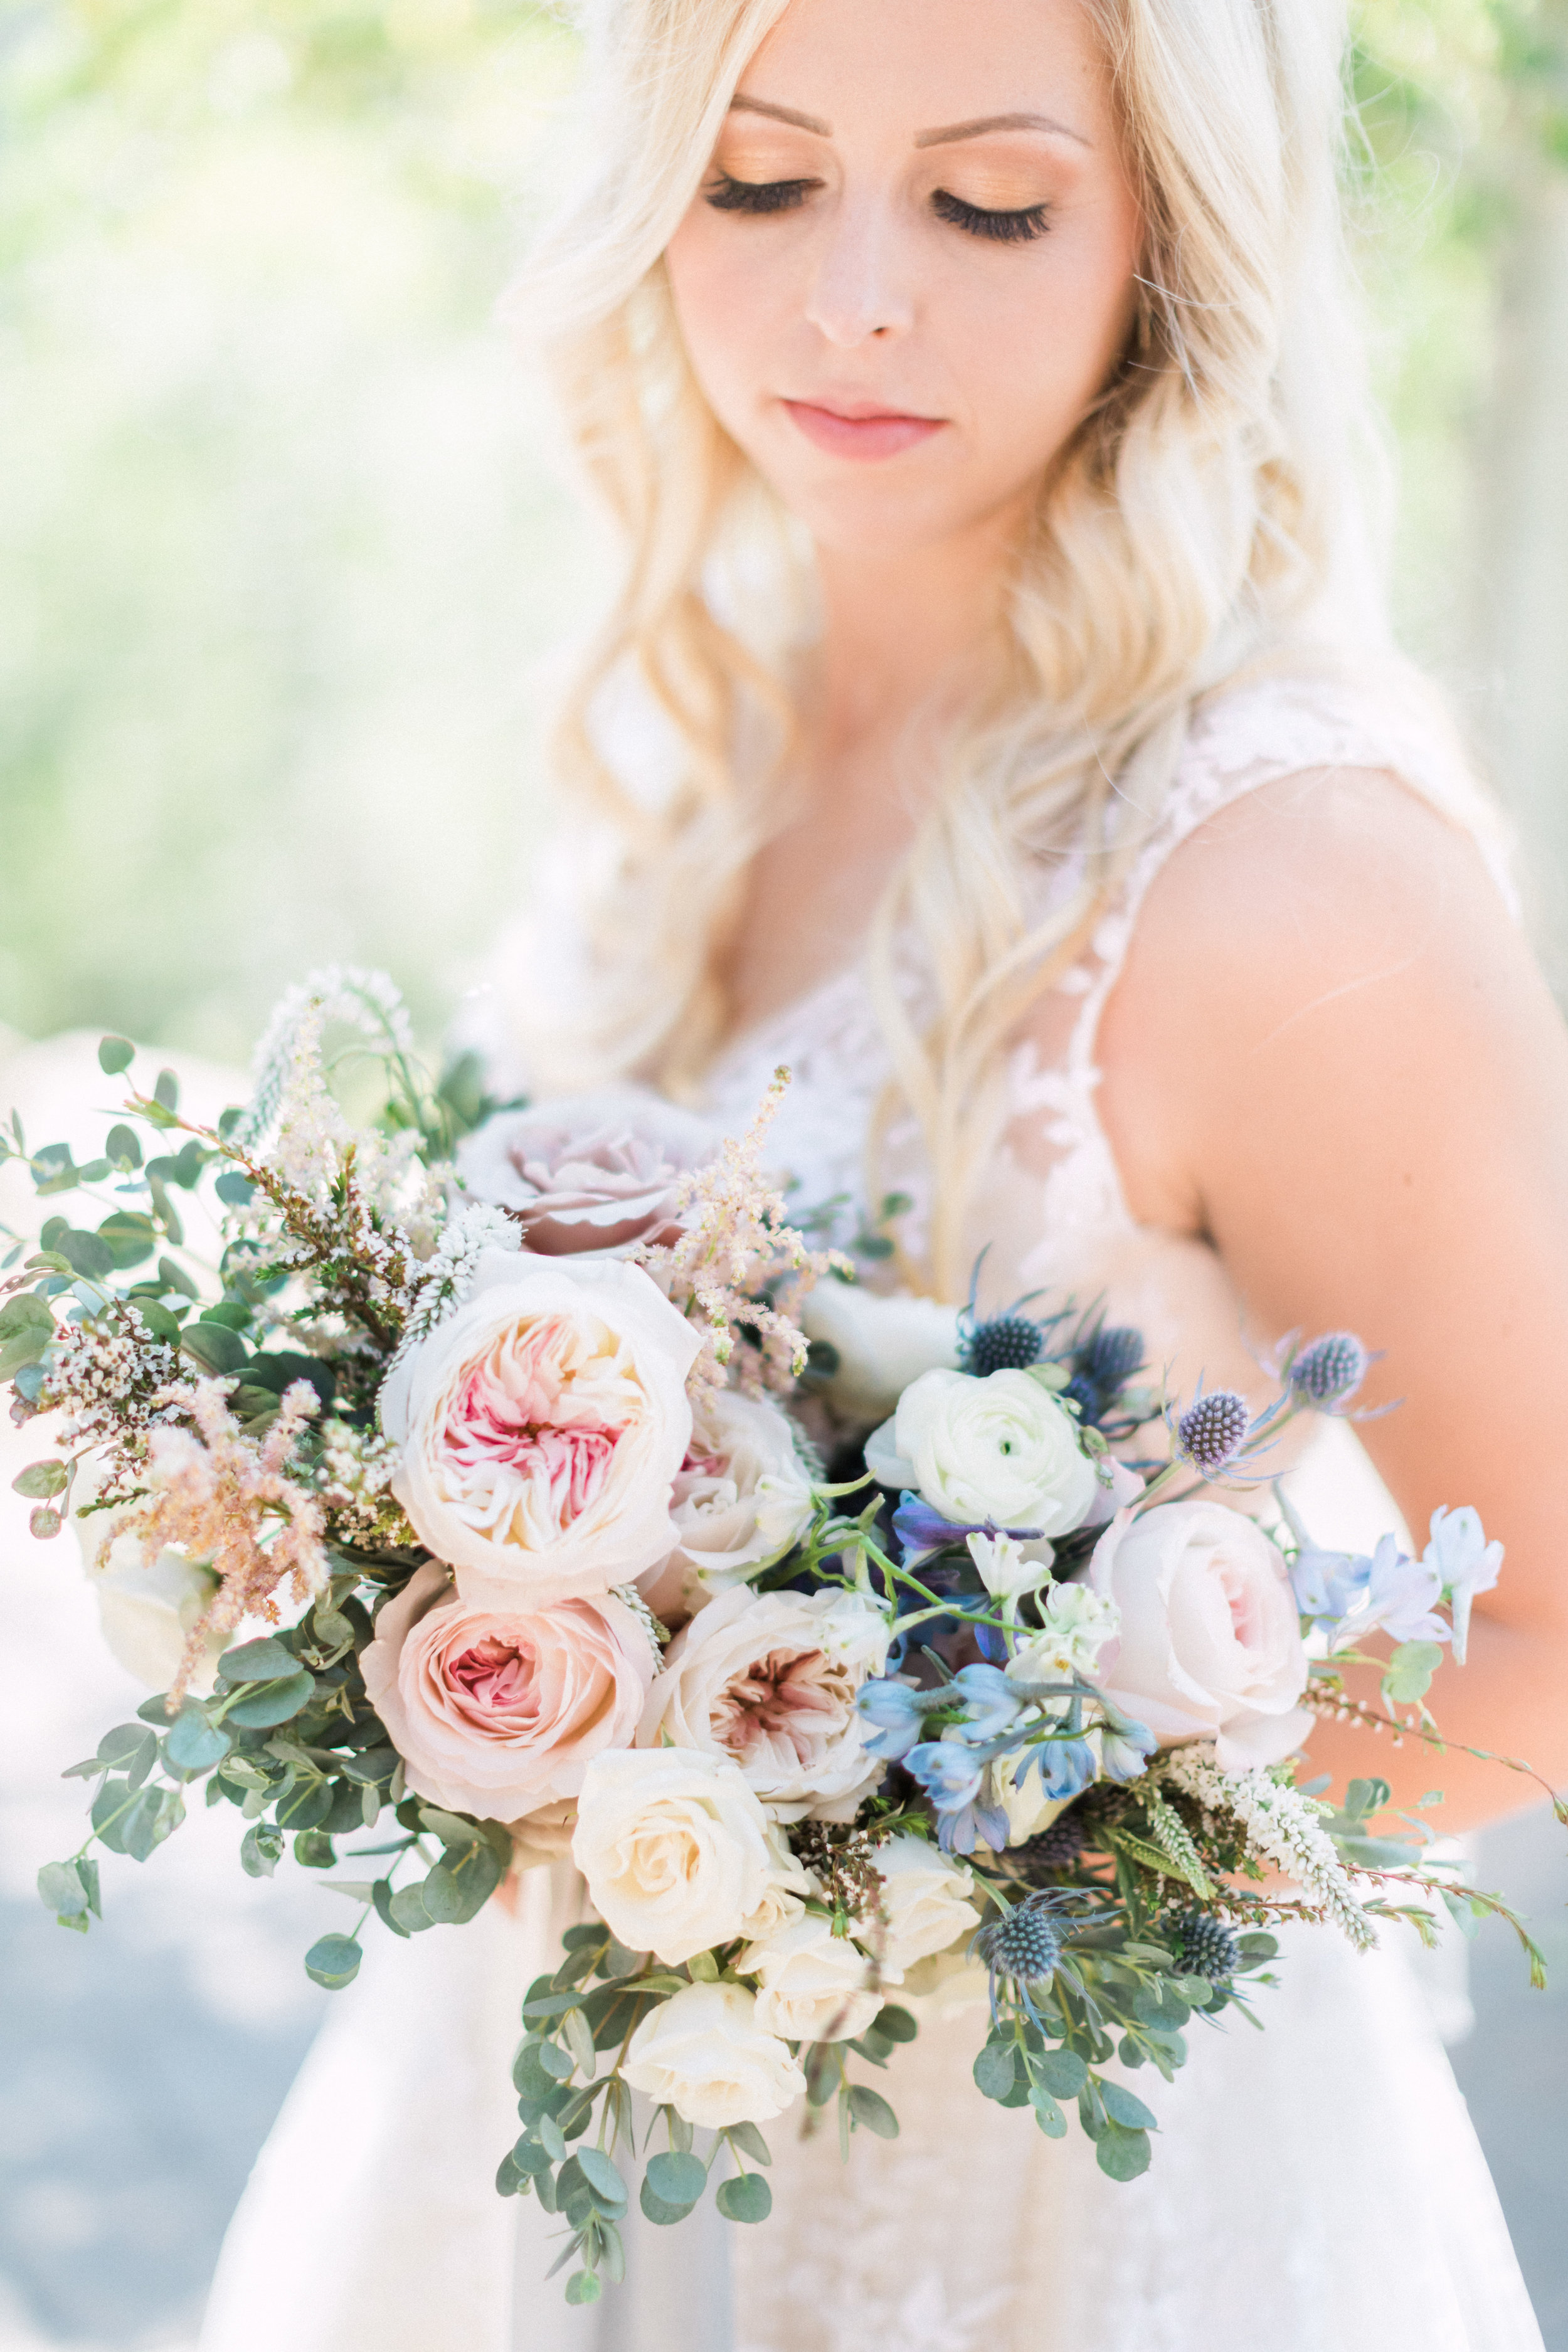 Wedding Planning Decision Makers | Wedding Planning Tips | Michelle Leo Events | Utah Event Planner and Designer